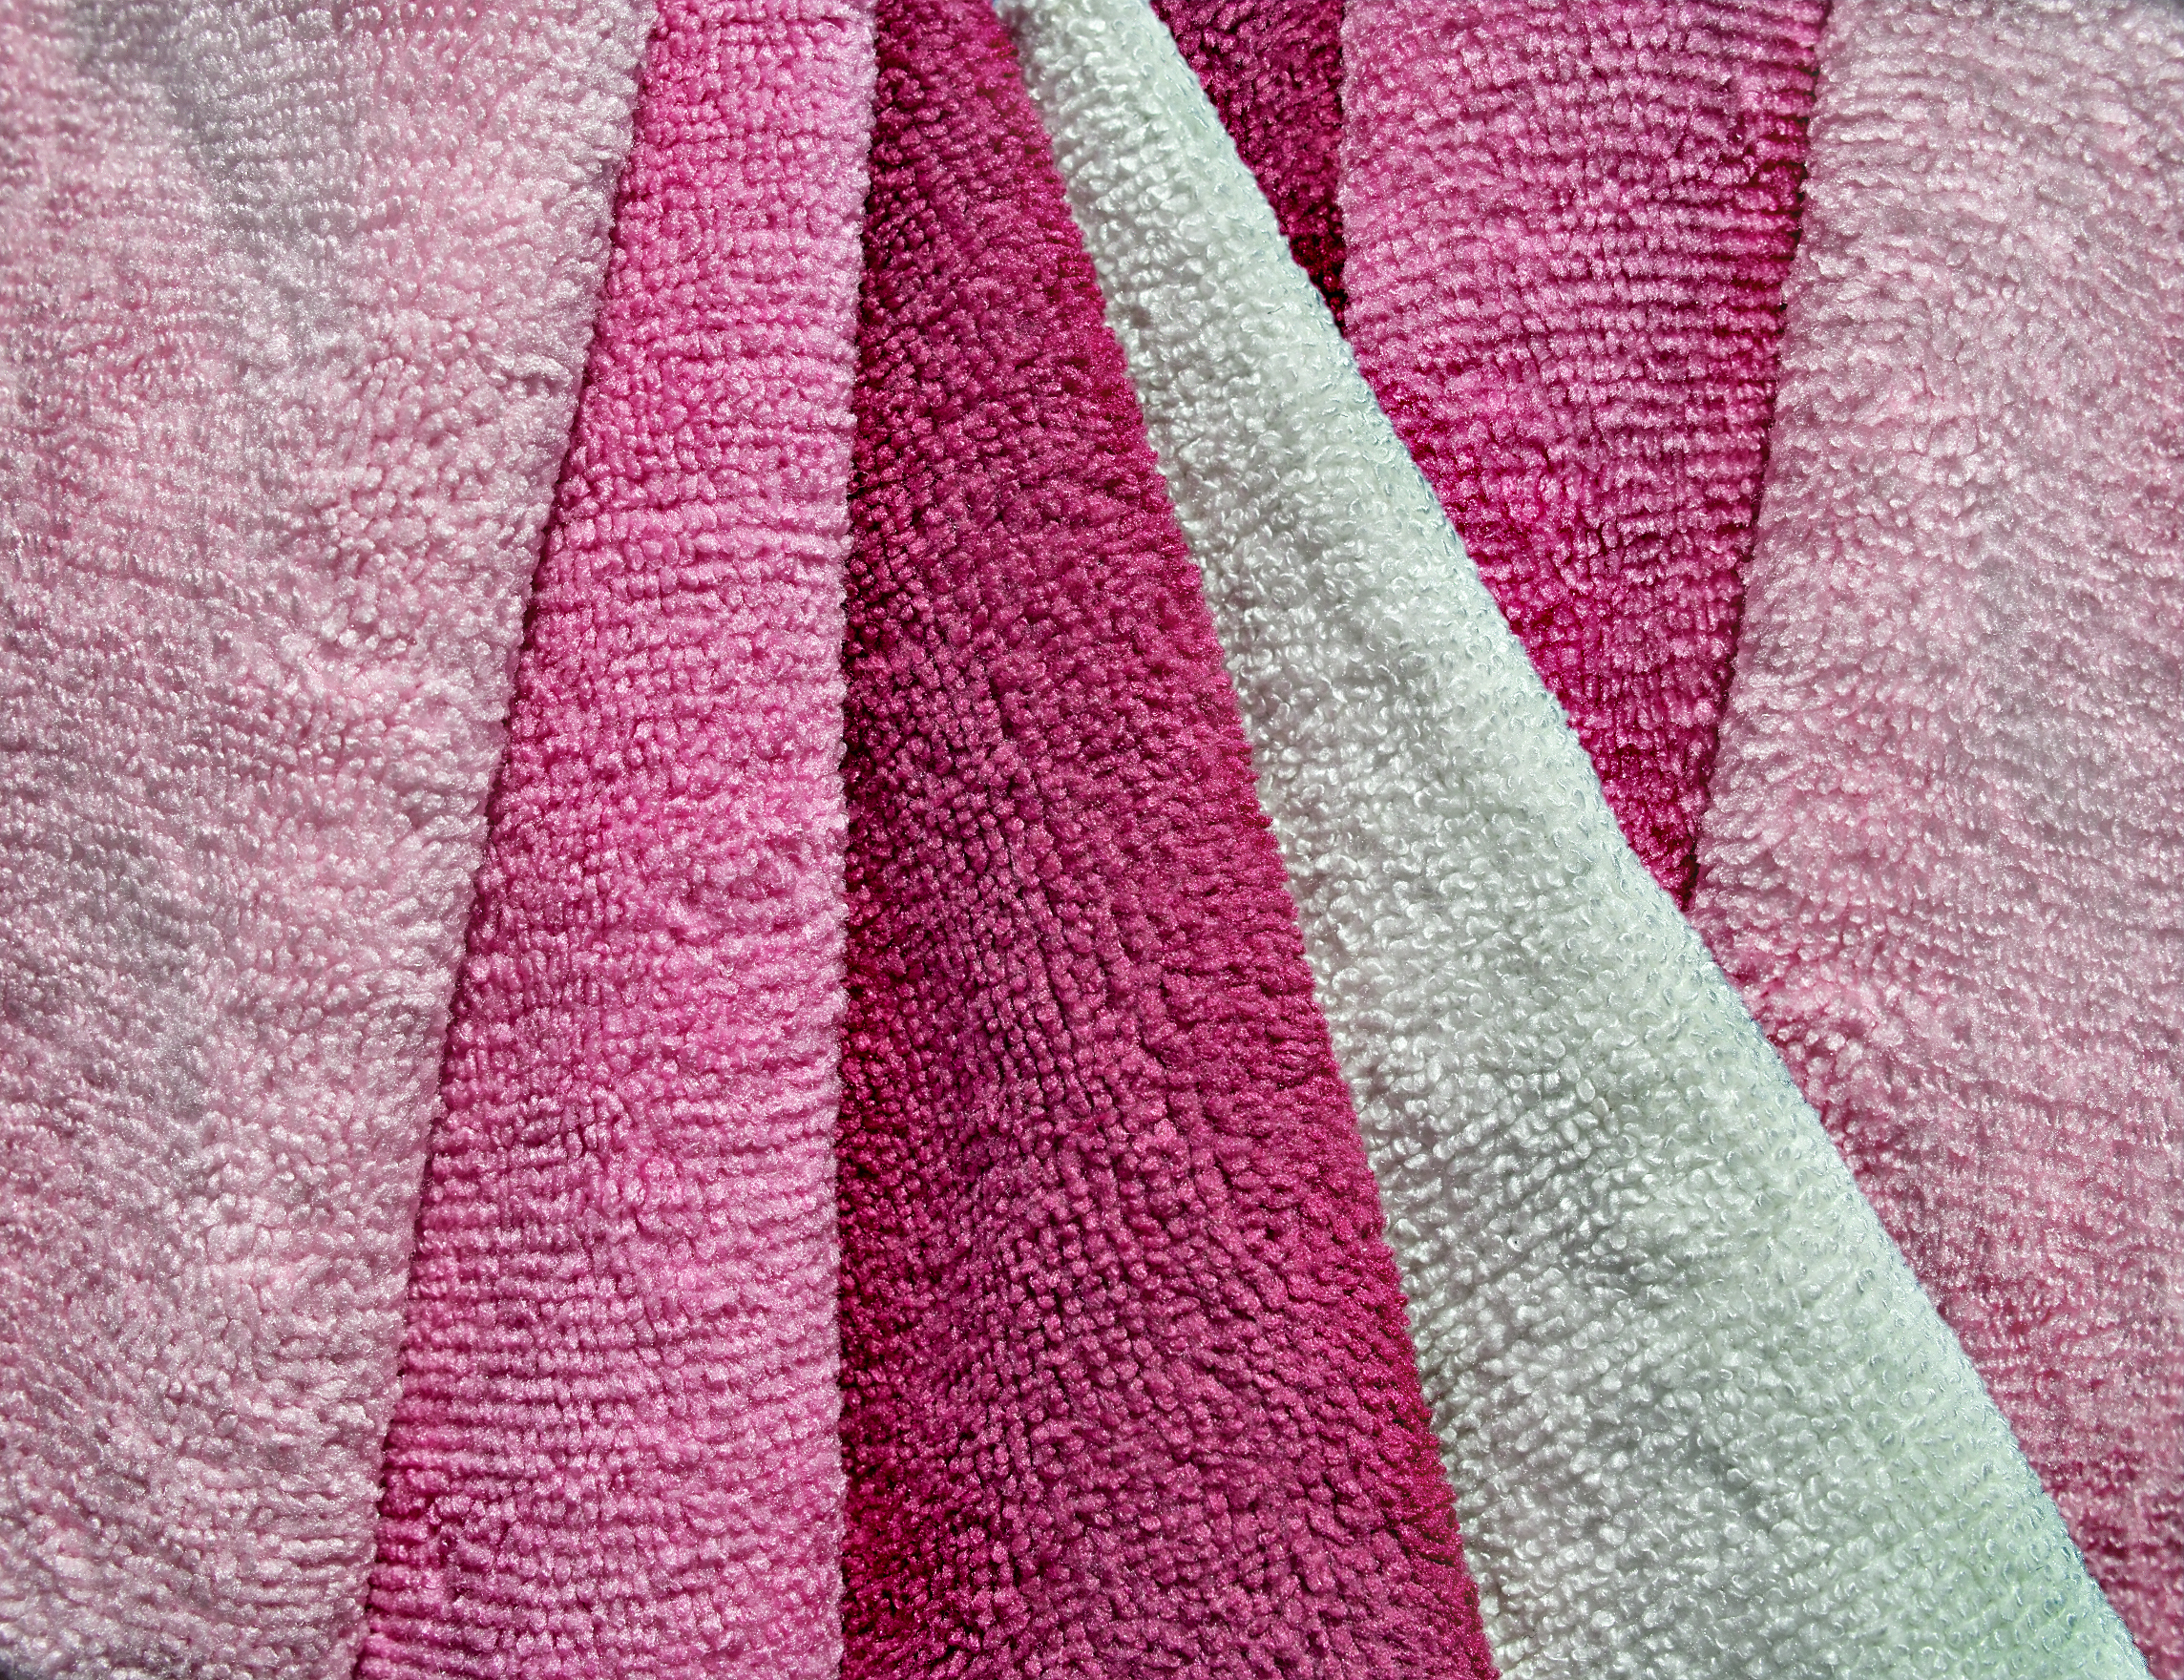 Reach To Microfiber Towels For A Thorough Detailing